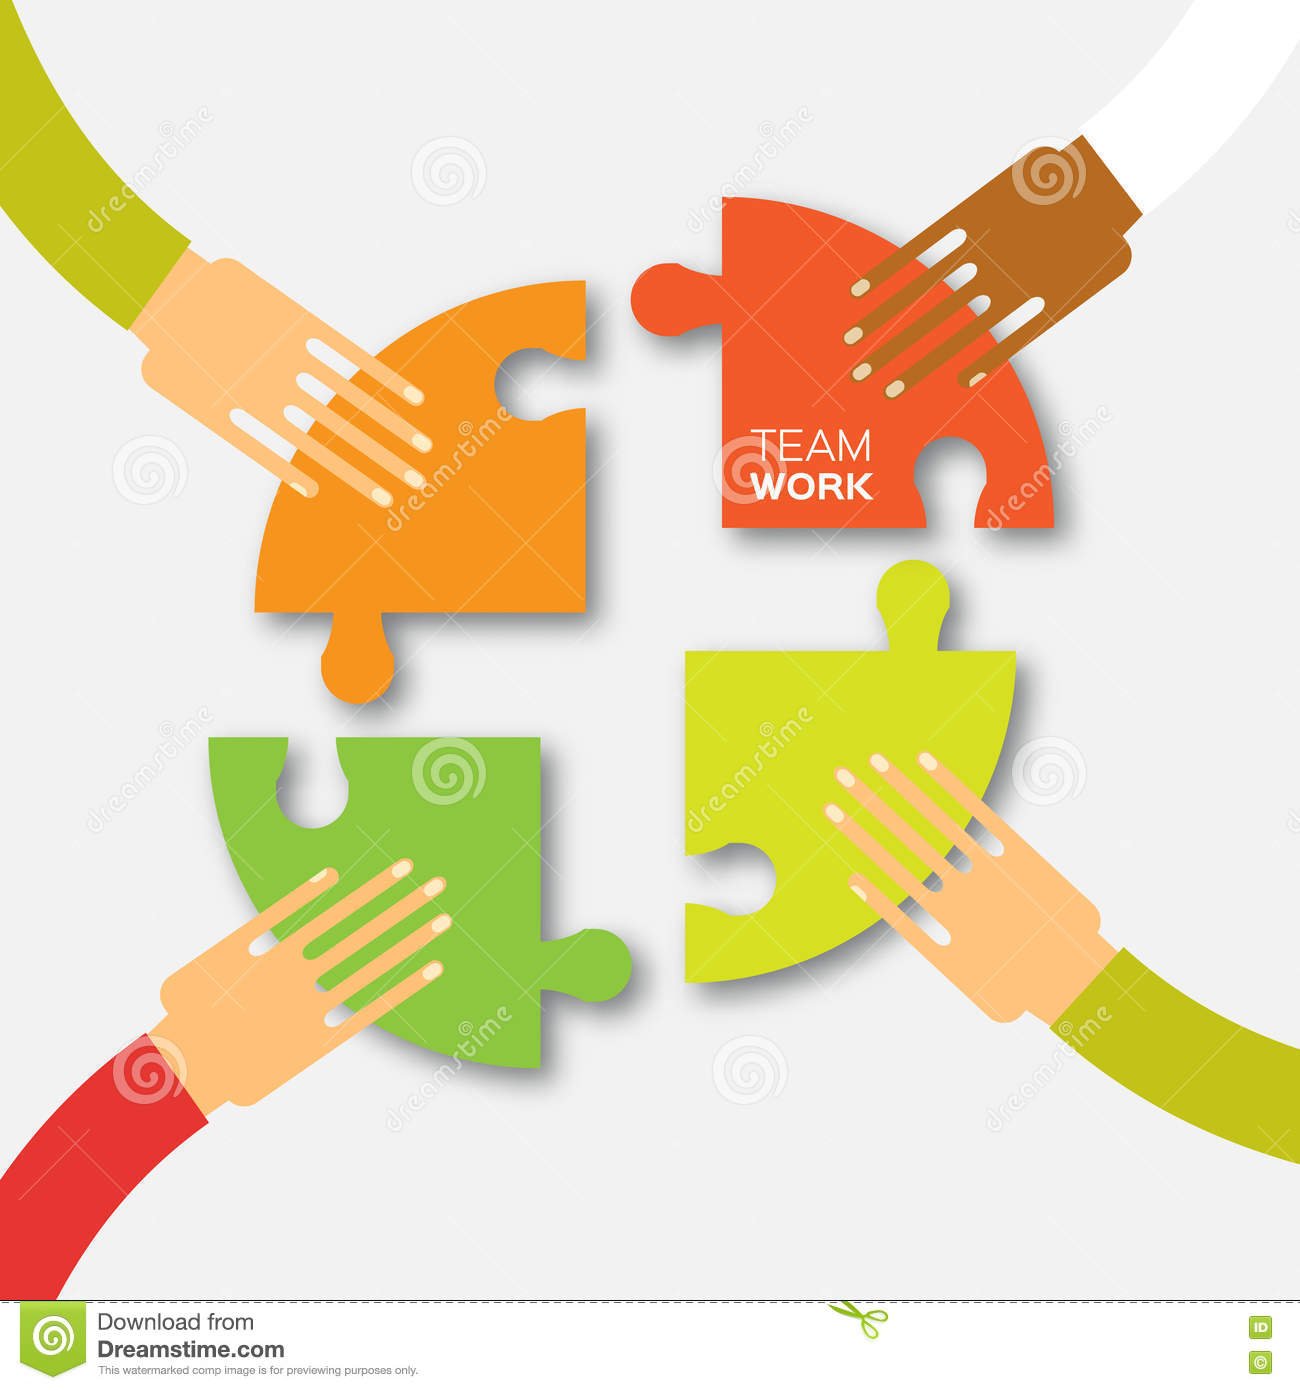 Four Hands Together Team Work Stock Vector